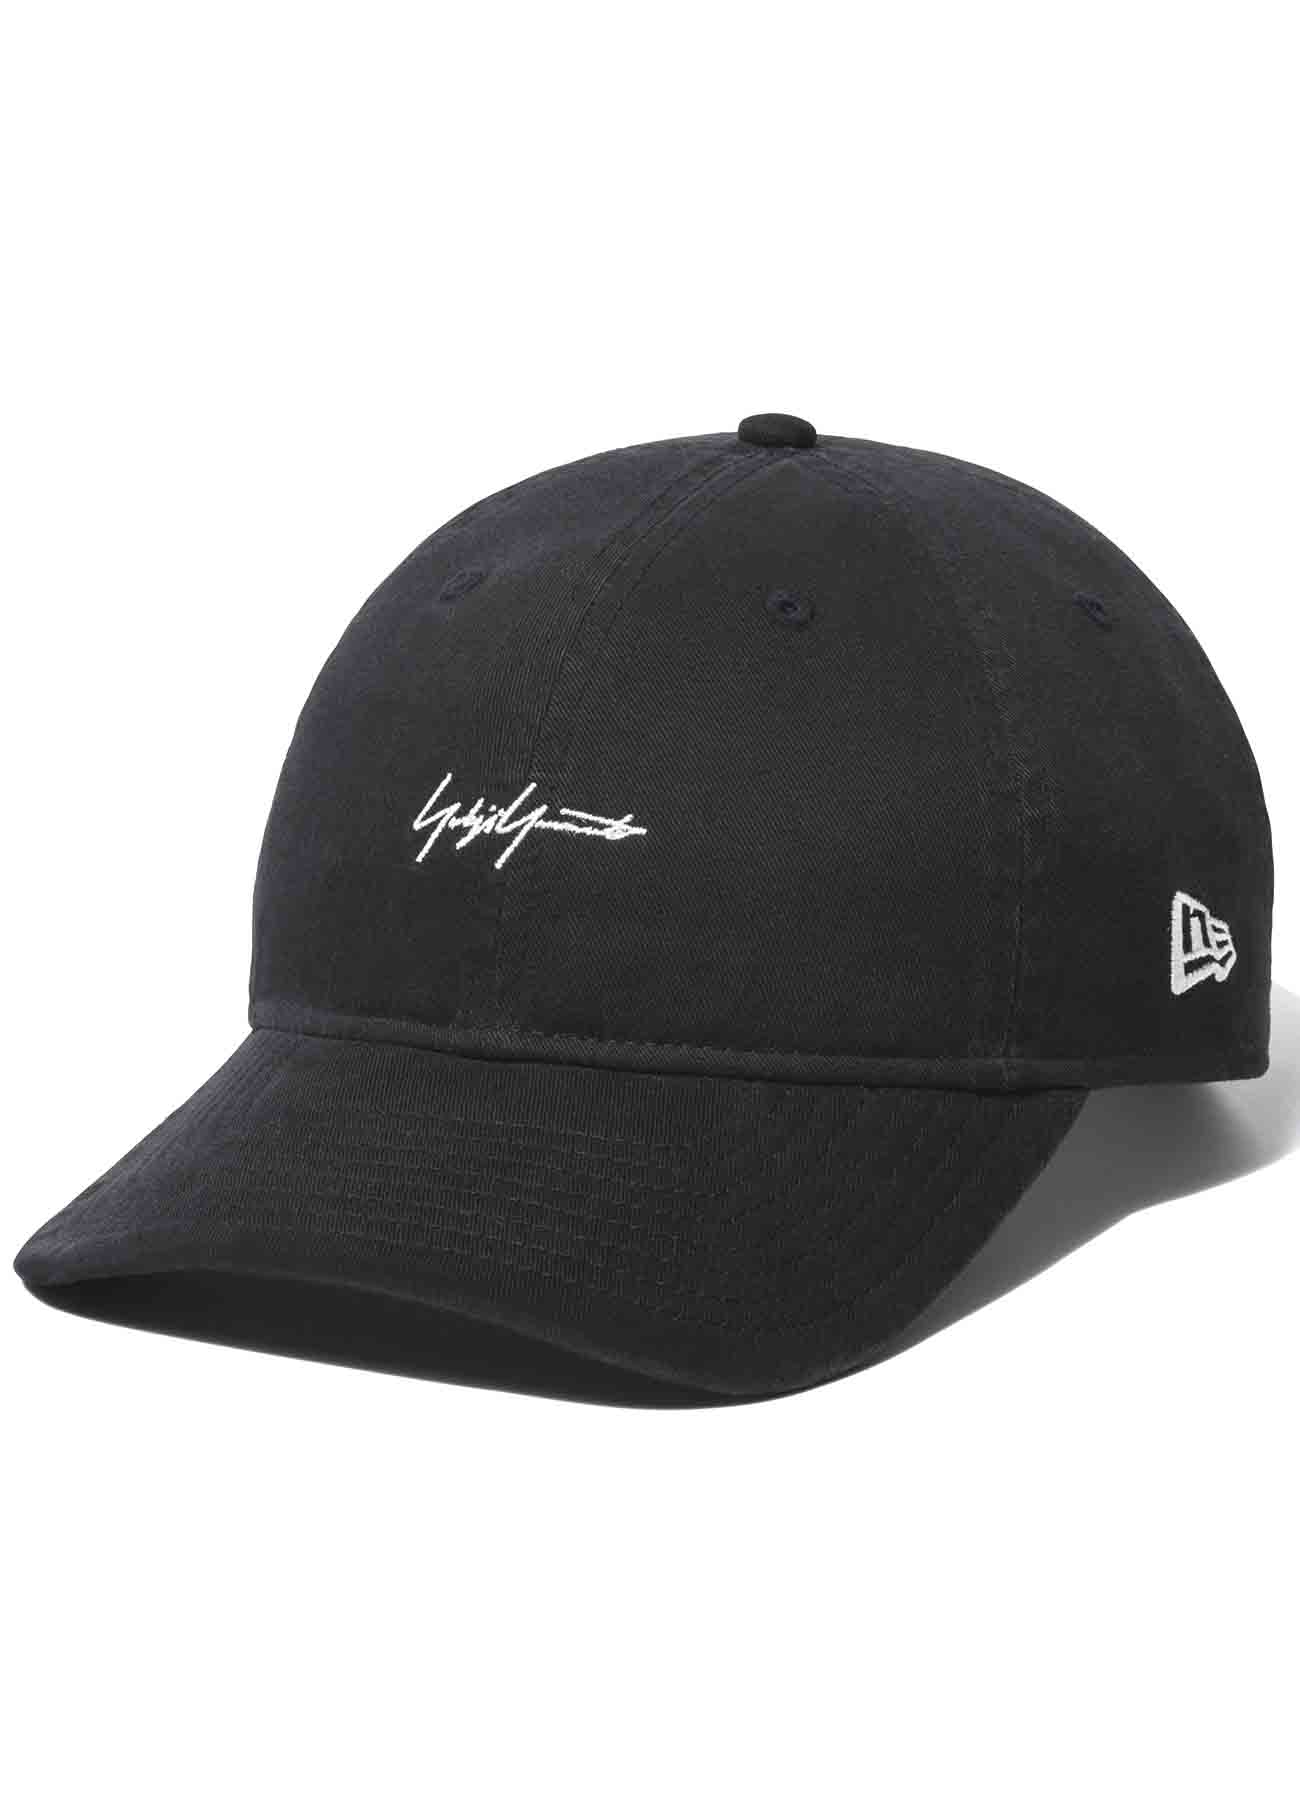 Yohji Yamamoto × New Era 9THIRTY Cotton Packable Logo Black